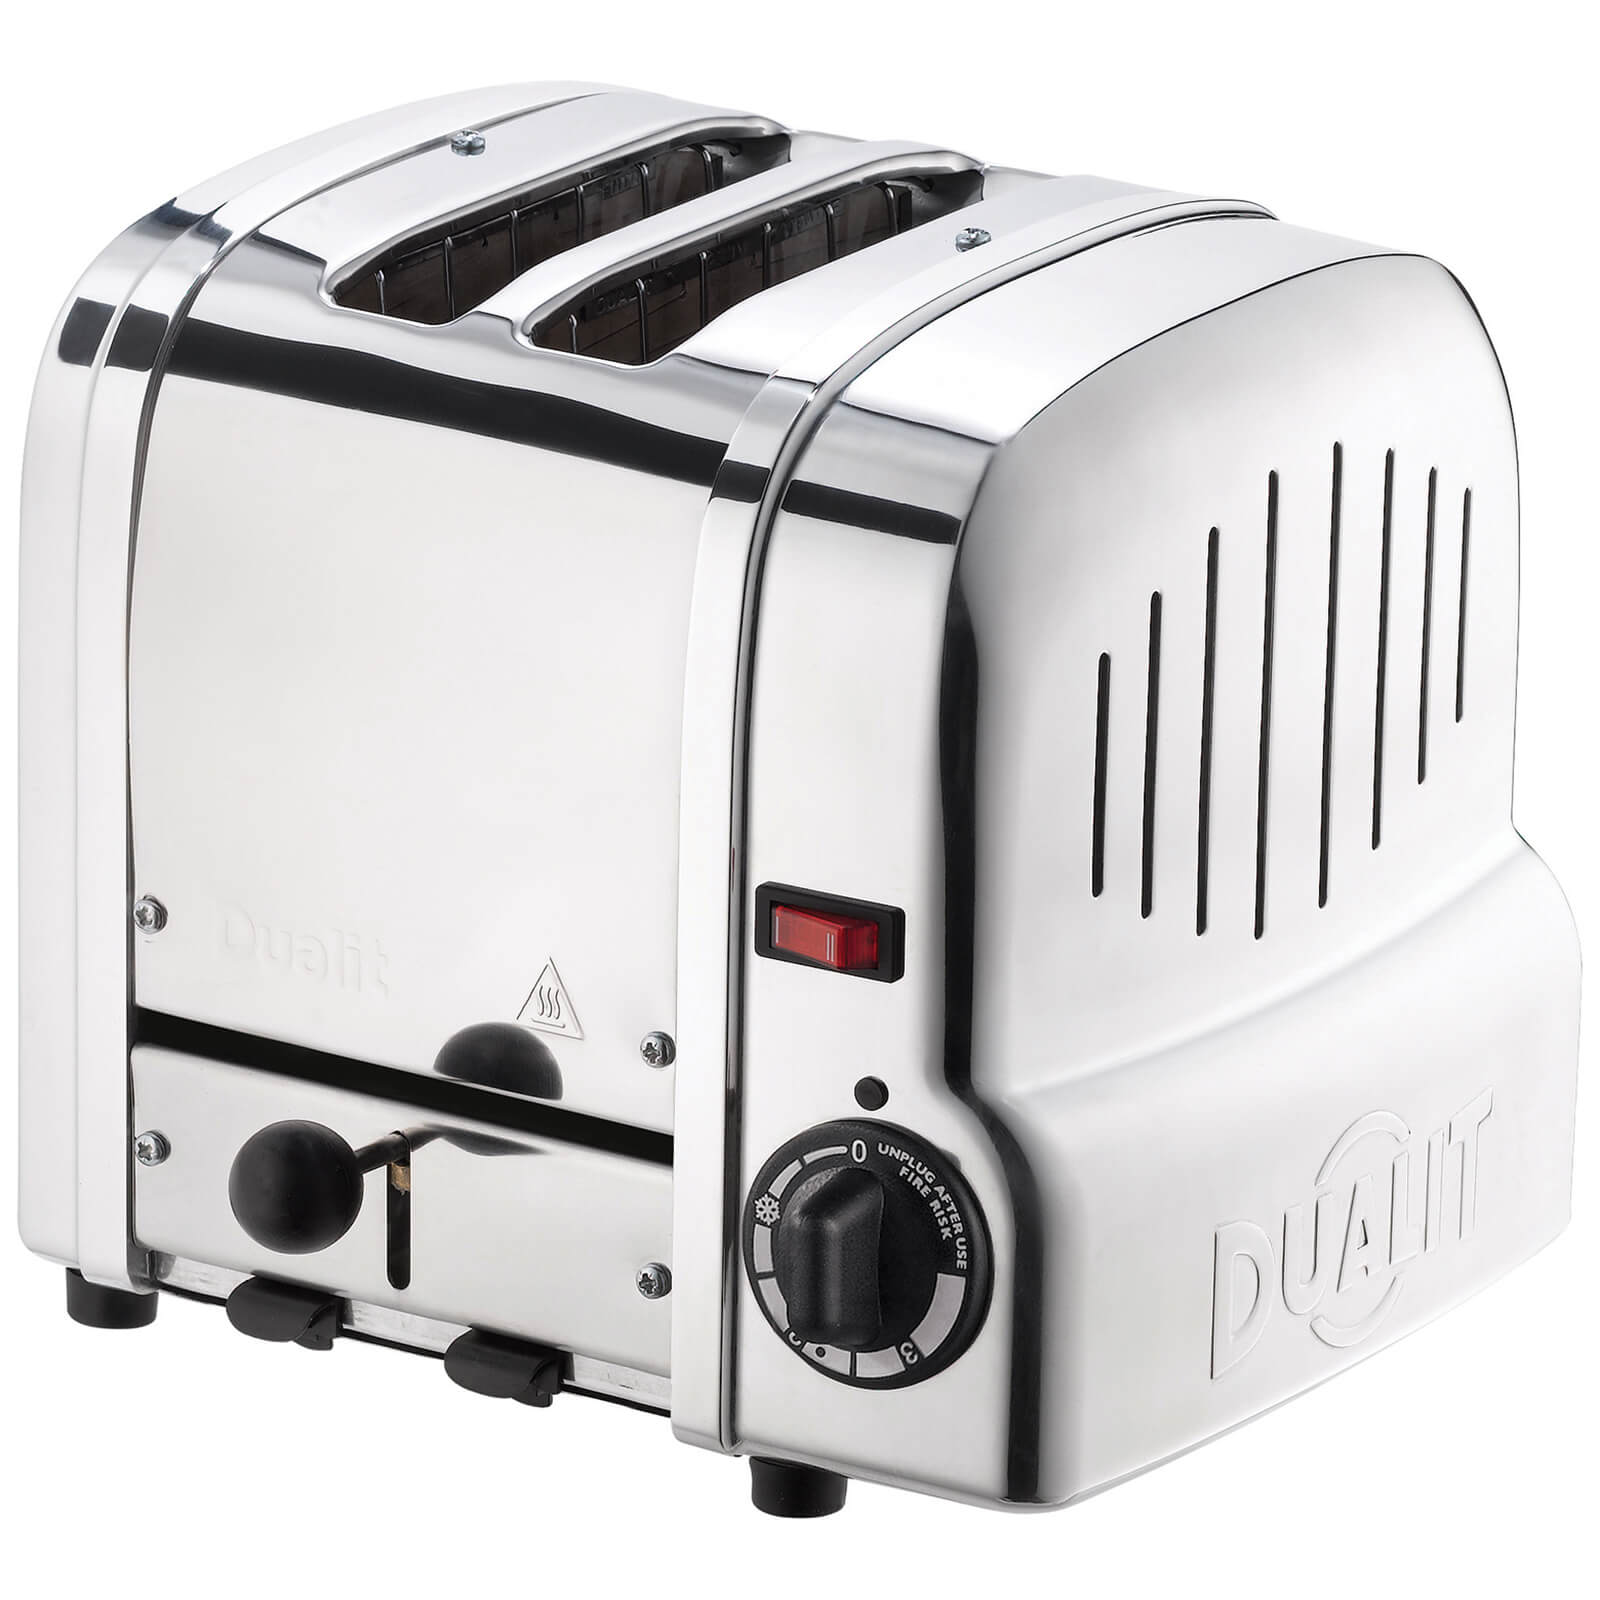 Dualit 27360 Classic Origins 2 Slot Toaster - Polished